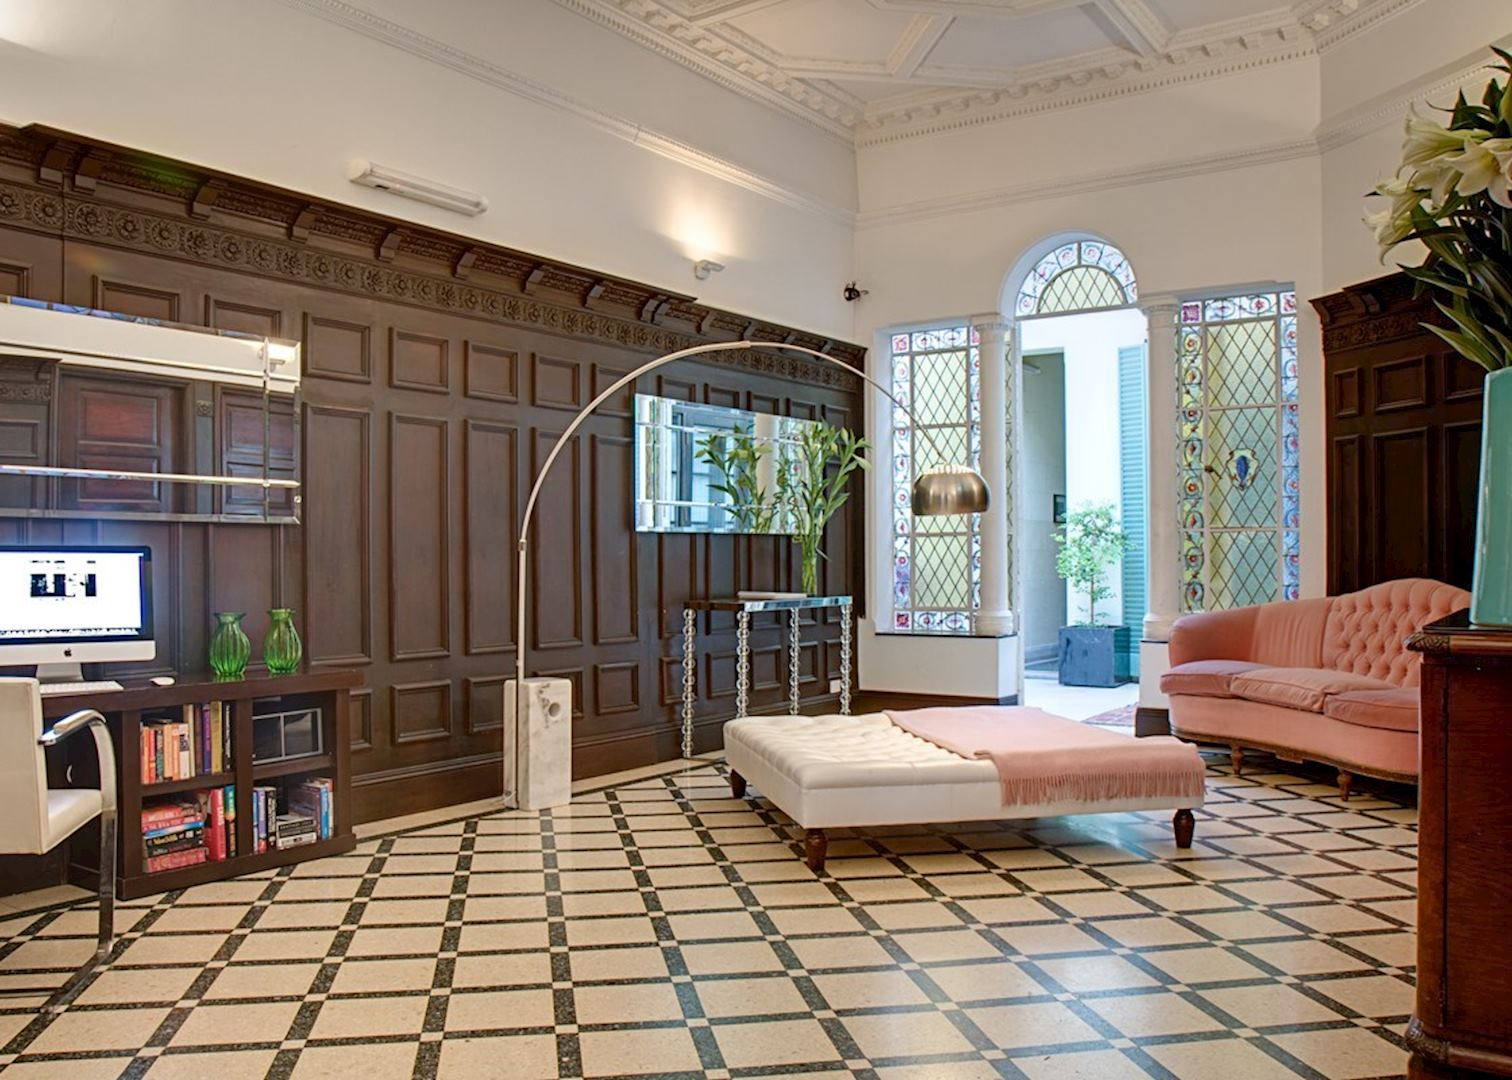 Krista hotel hotels in buenos aires audley travel for Hotel boutique palermo